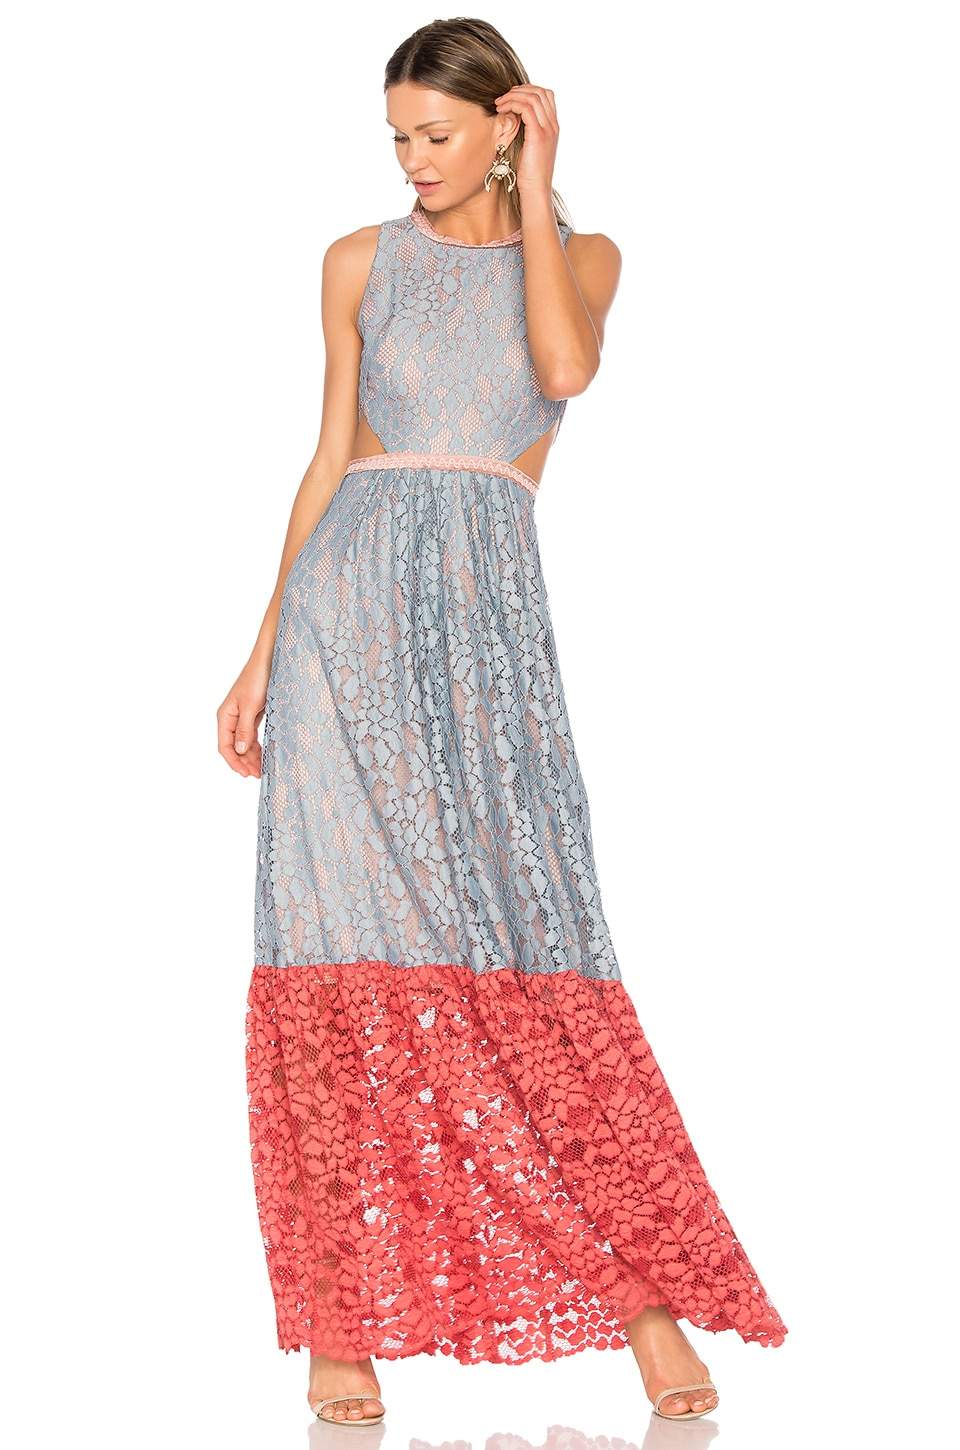 Alexis Arhea Gown in Multicolor Lace